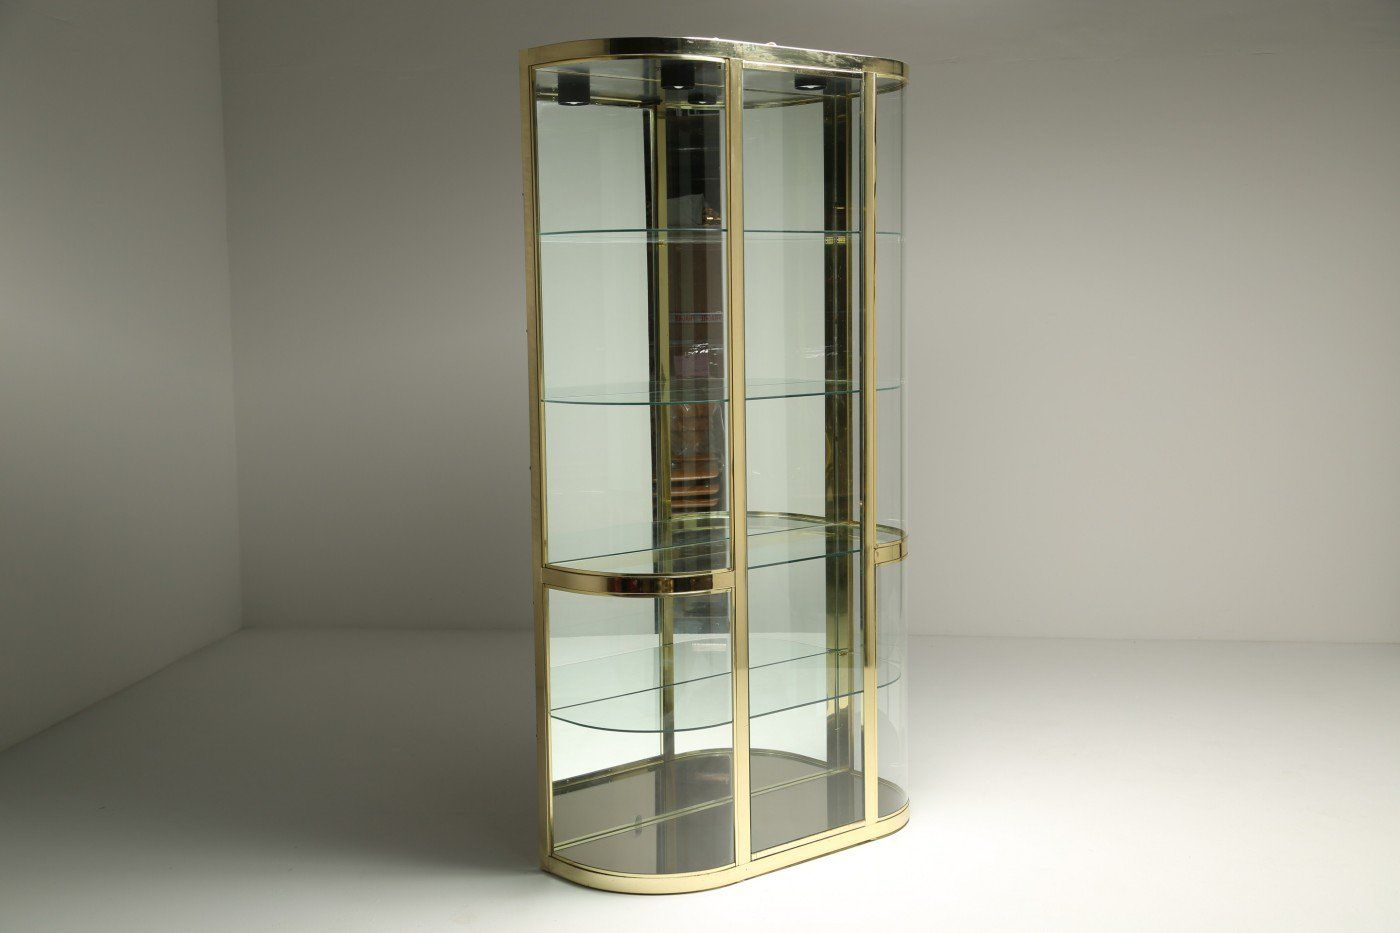 brass and glass vitrine by design institute of america for. Black Bedroom Furniture Sets. Home Design Ideas